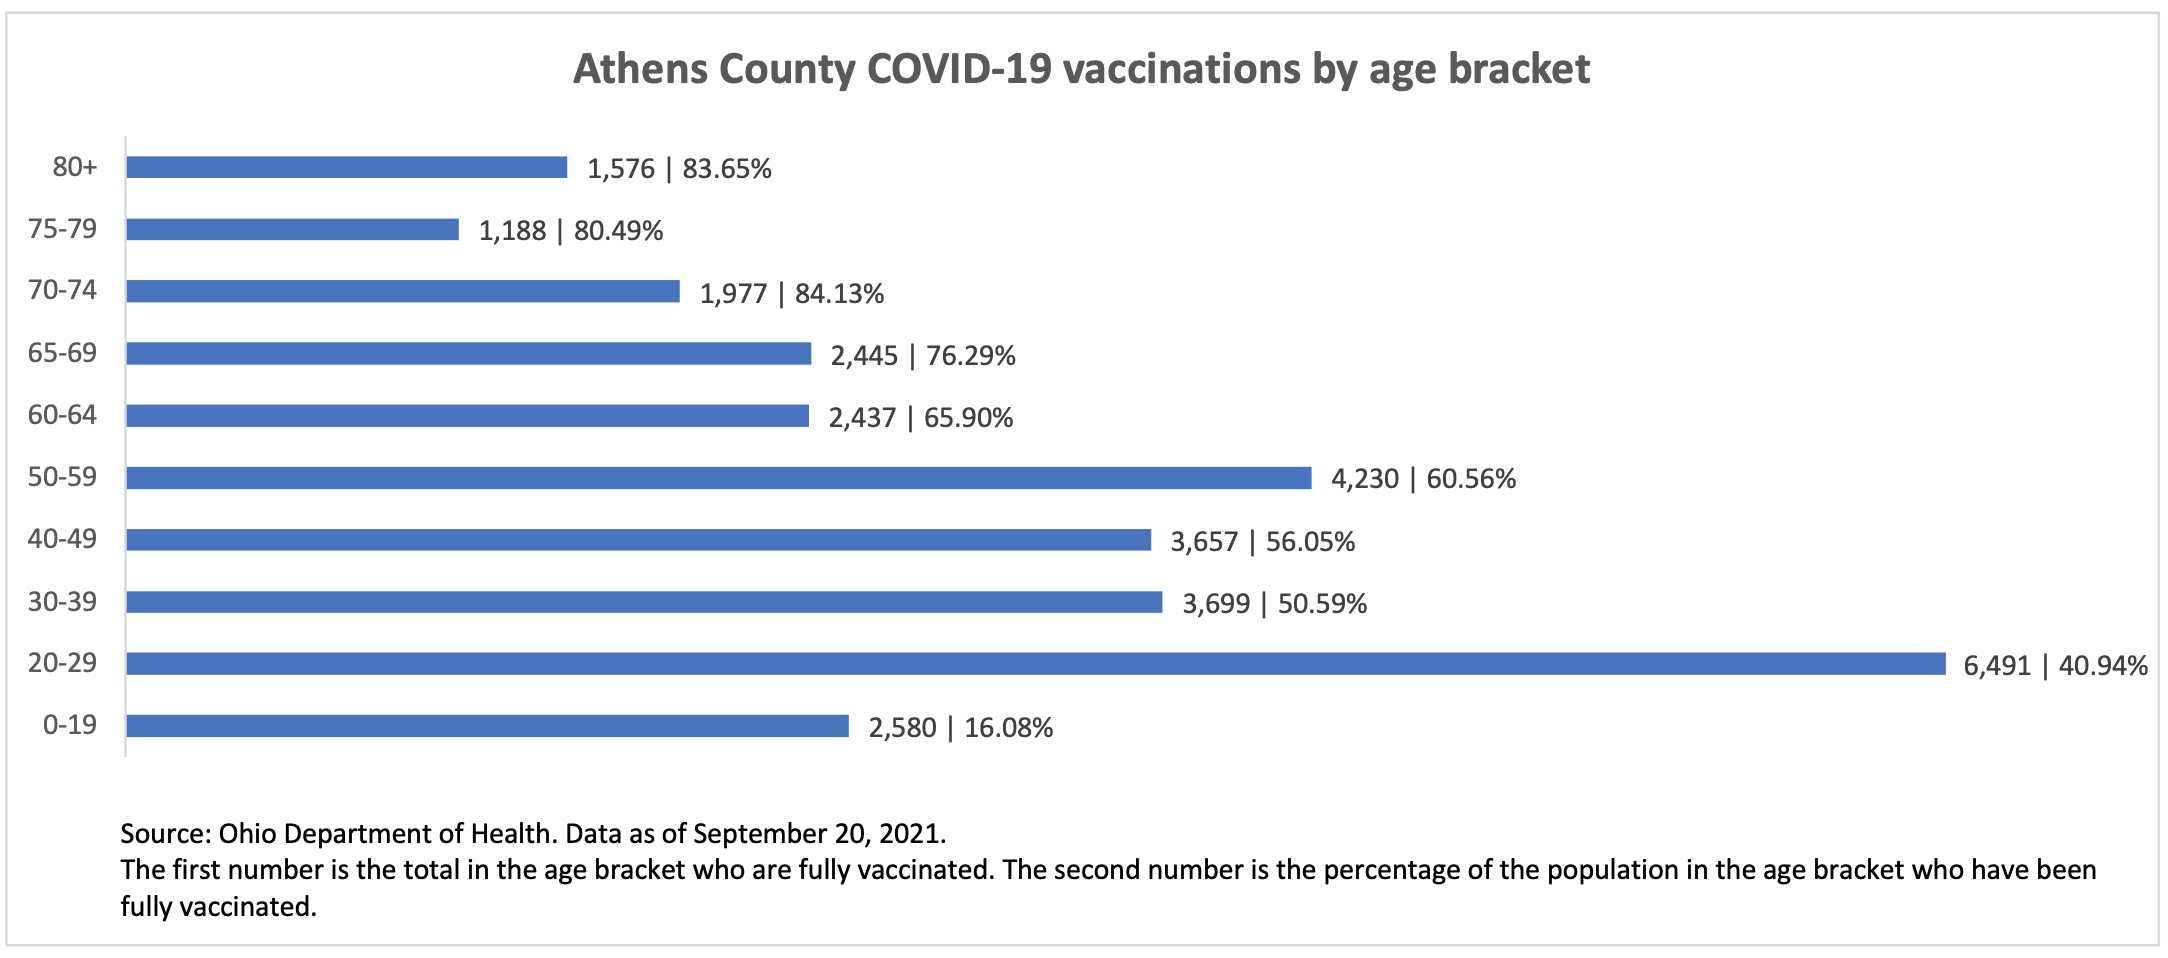 Athens County COVID-19 vaccinations by age bracket.